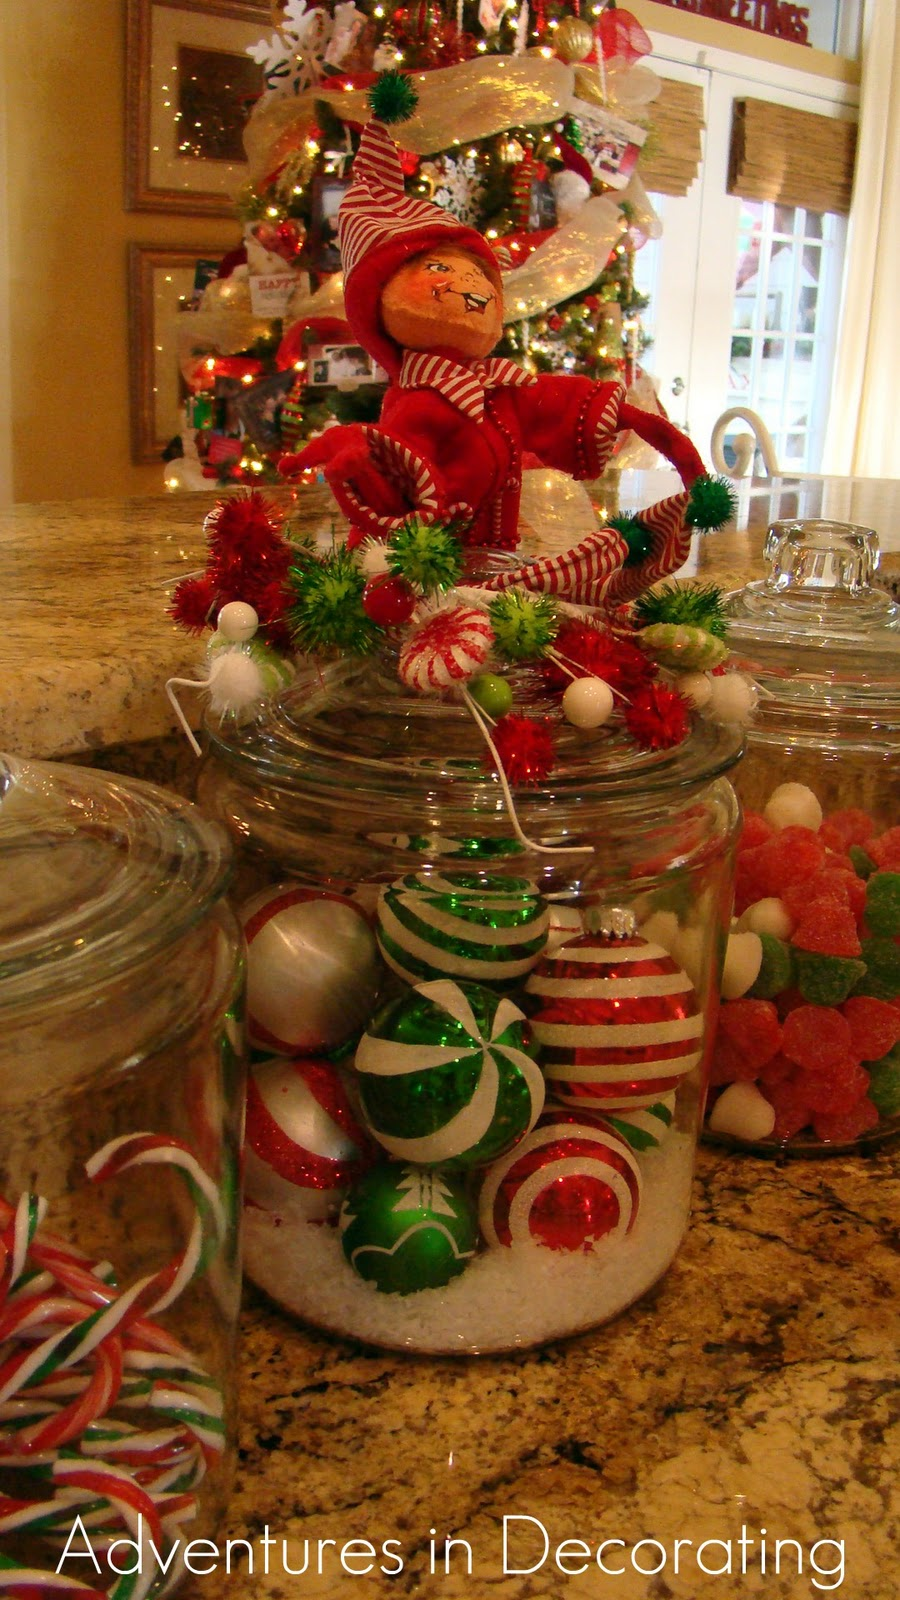 Christmas Decorating Ideas Kitchen Island : Adventures in decorating whimsical christmas kitchen